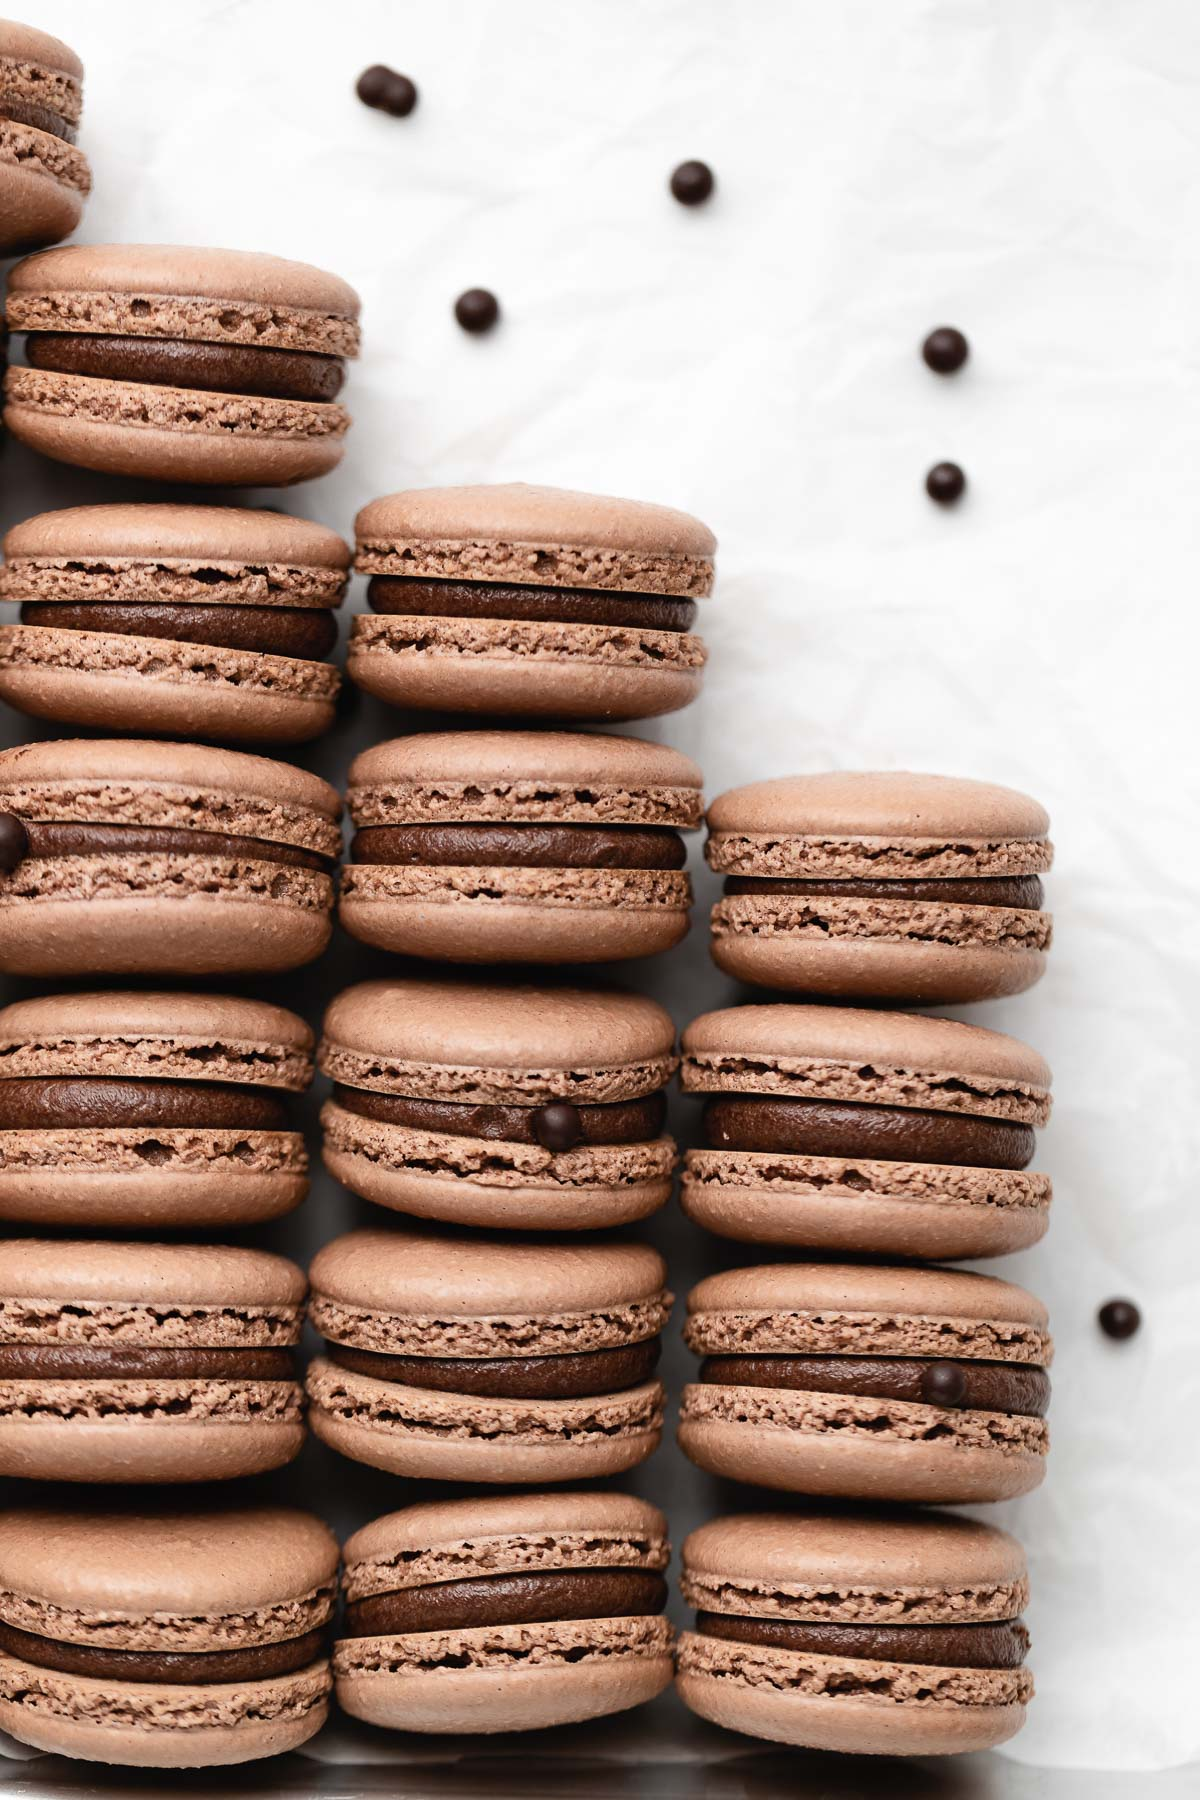 a bunch of macarons stacked on top of each other